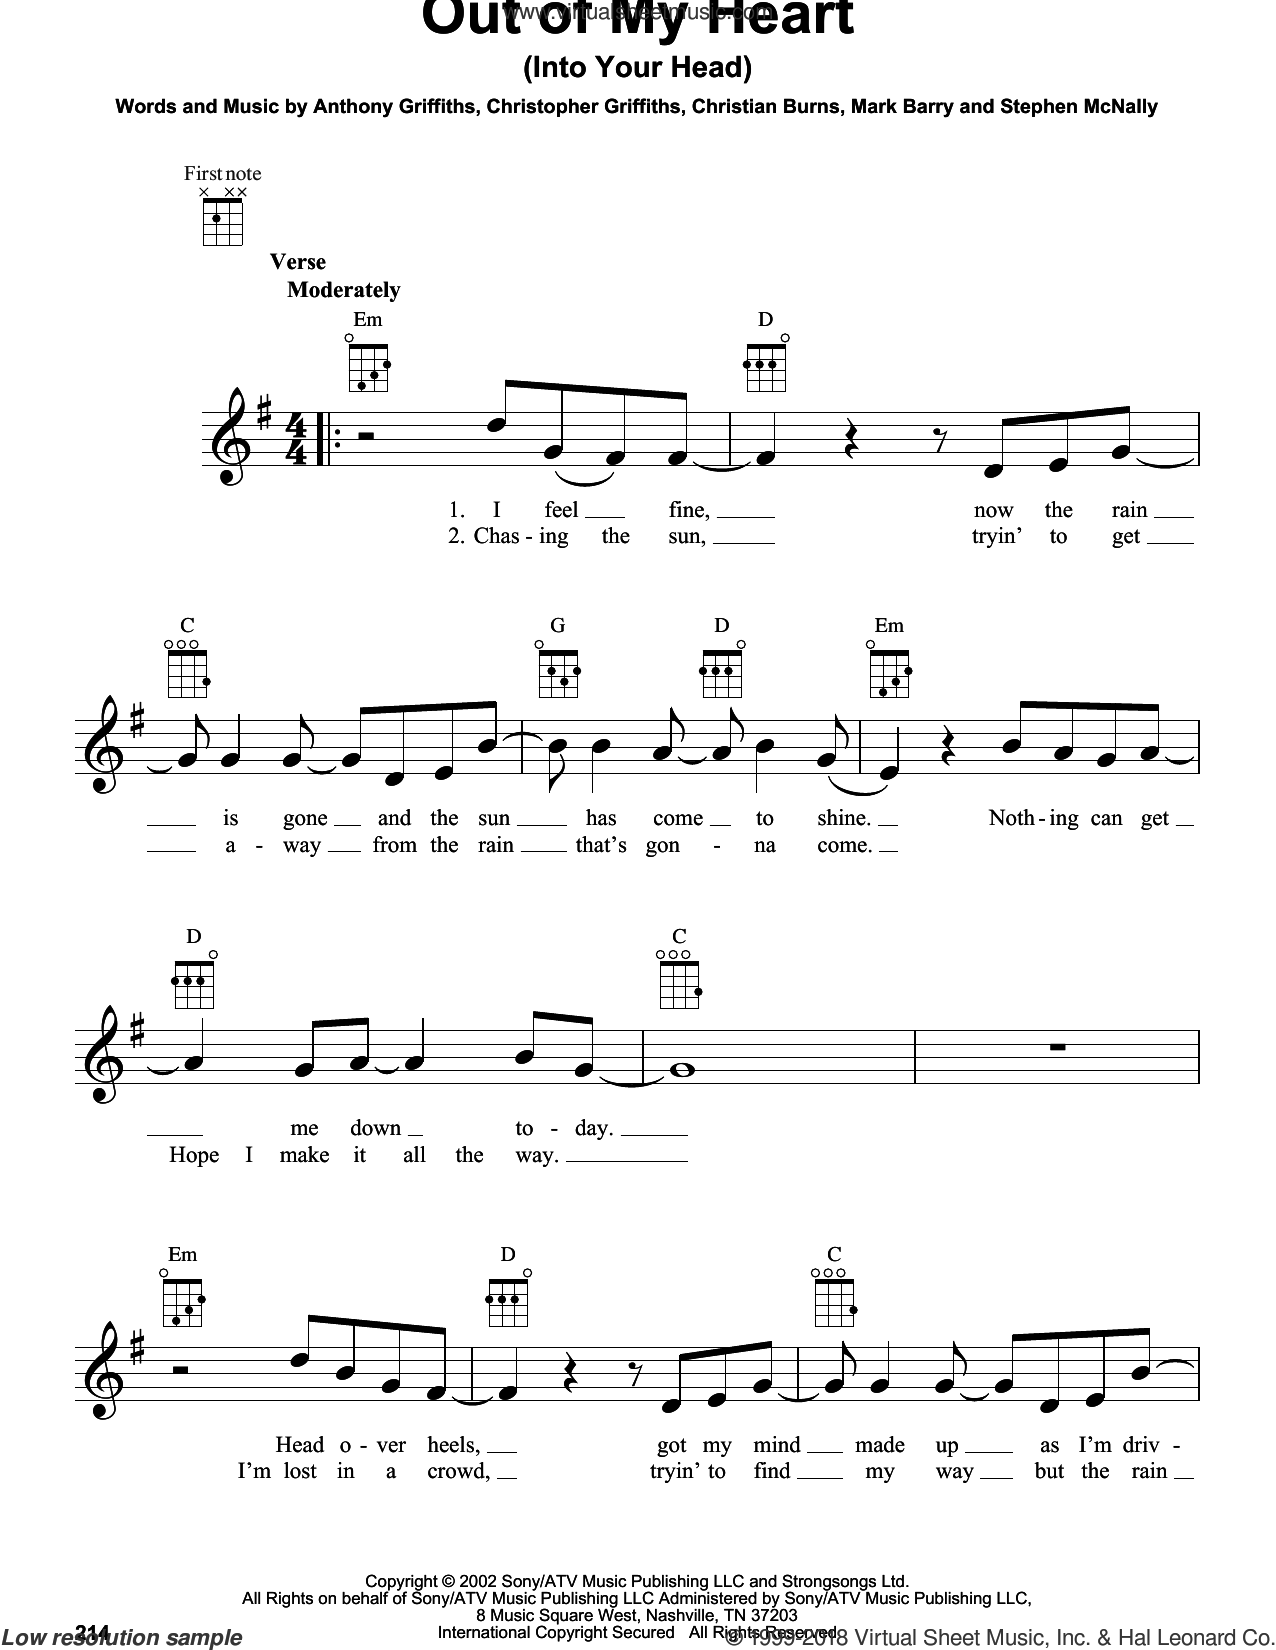 Out Of My Heart (Into Your Head) sheet music for ukulele by BBMak. Score Image Preview.